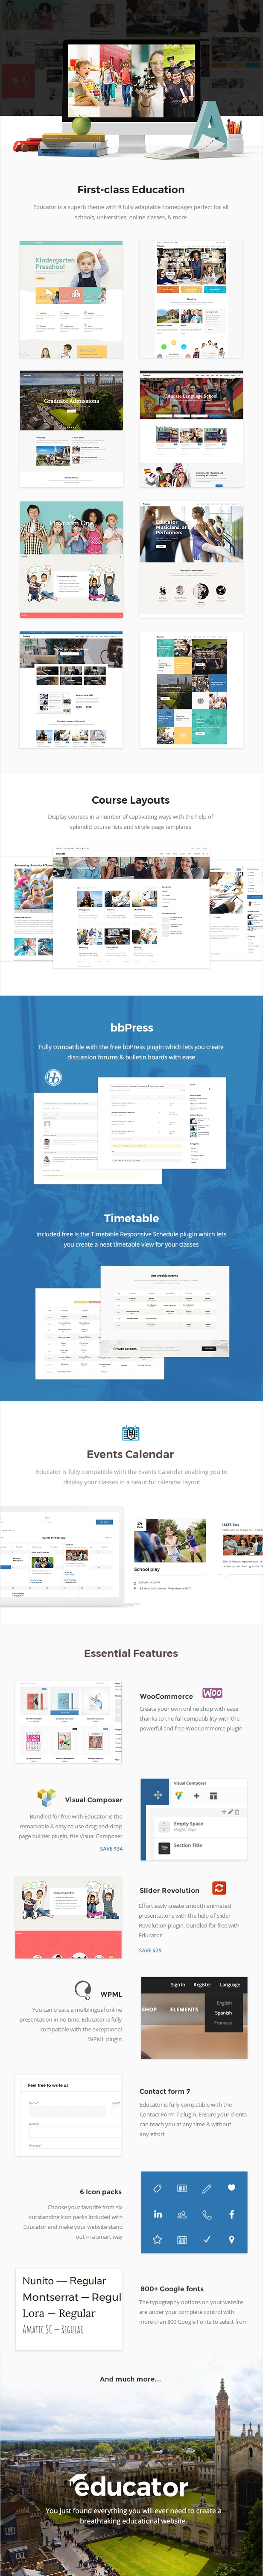 Educator - Education Theme for School, College and University - 1